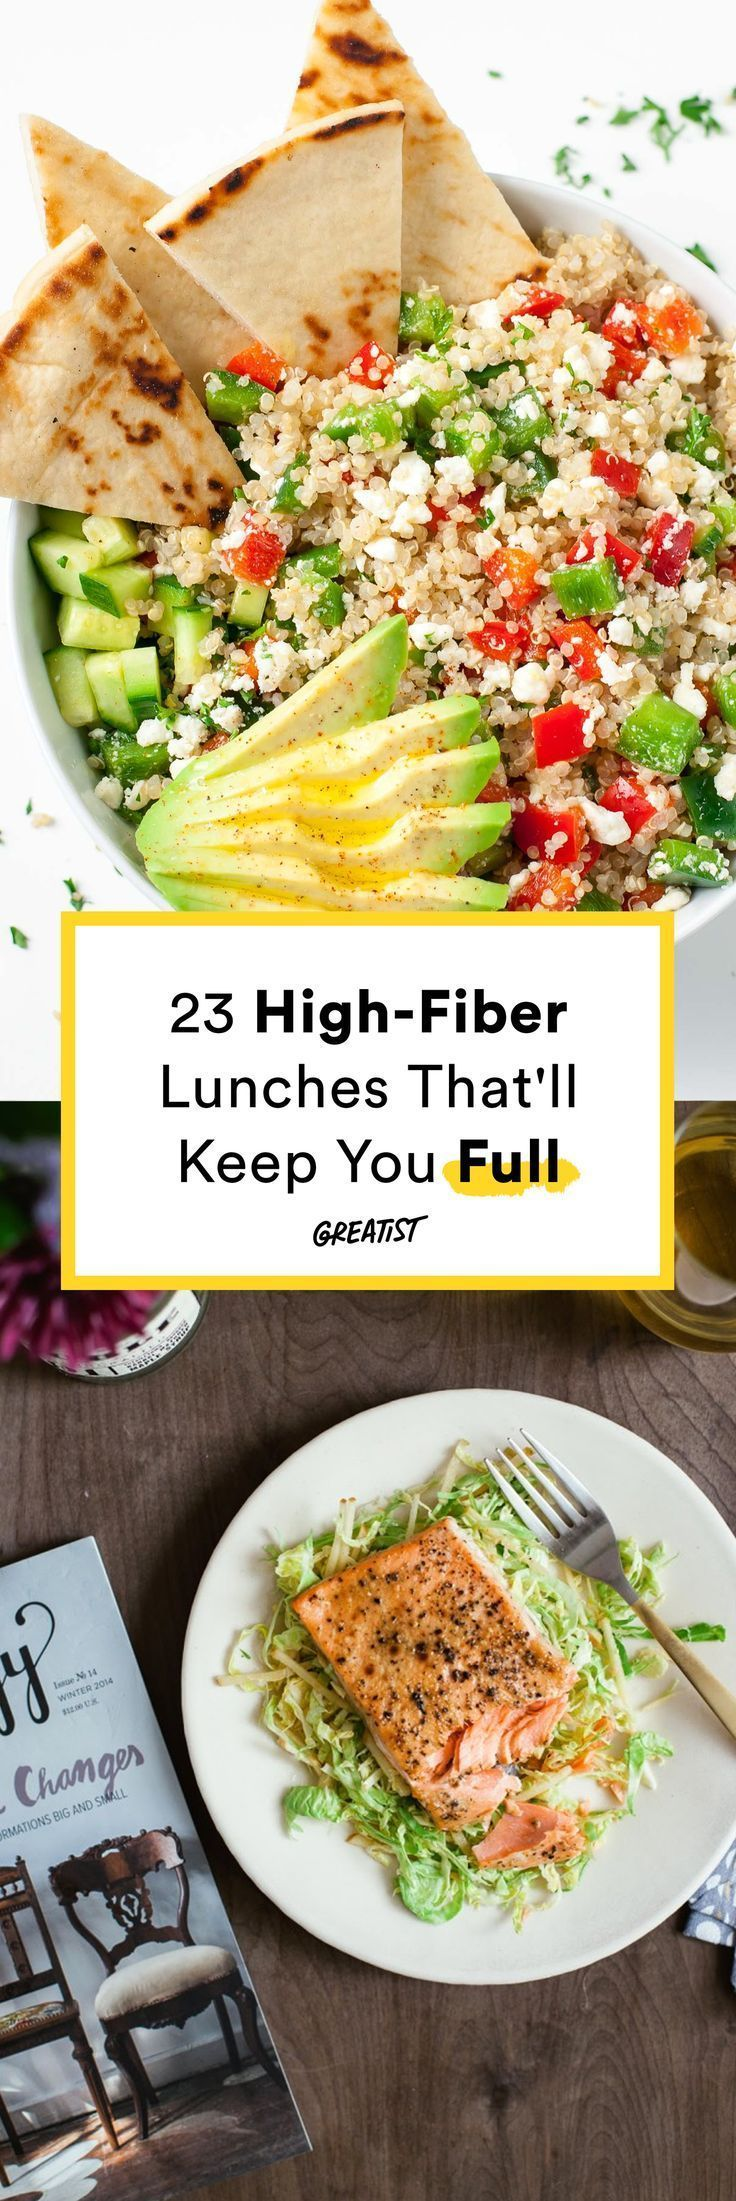 There's no need to mindlessly snack all afternoon. These healthy high-fiber lunch recipes are just what you need to stay fit and full!